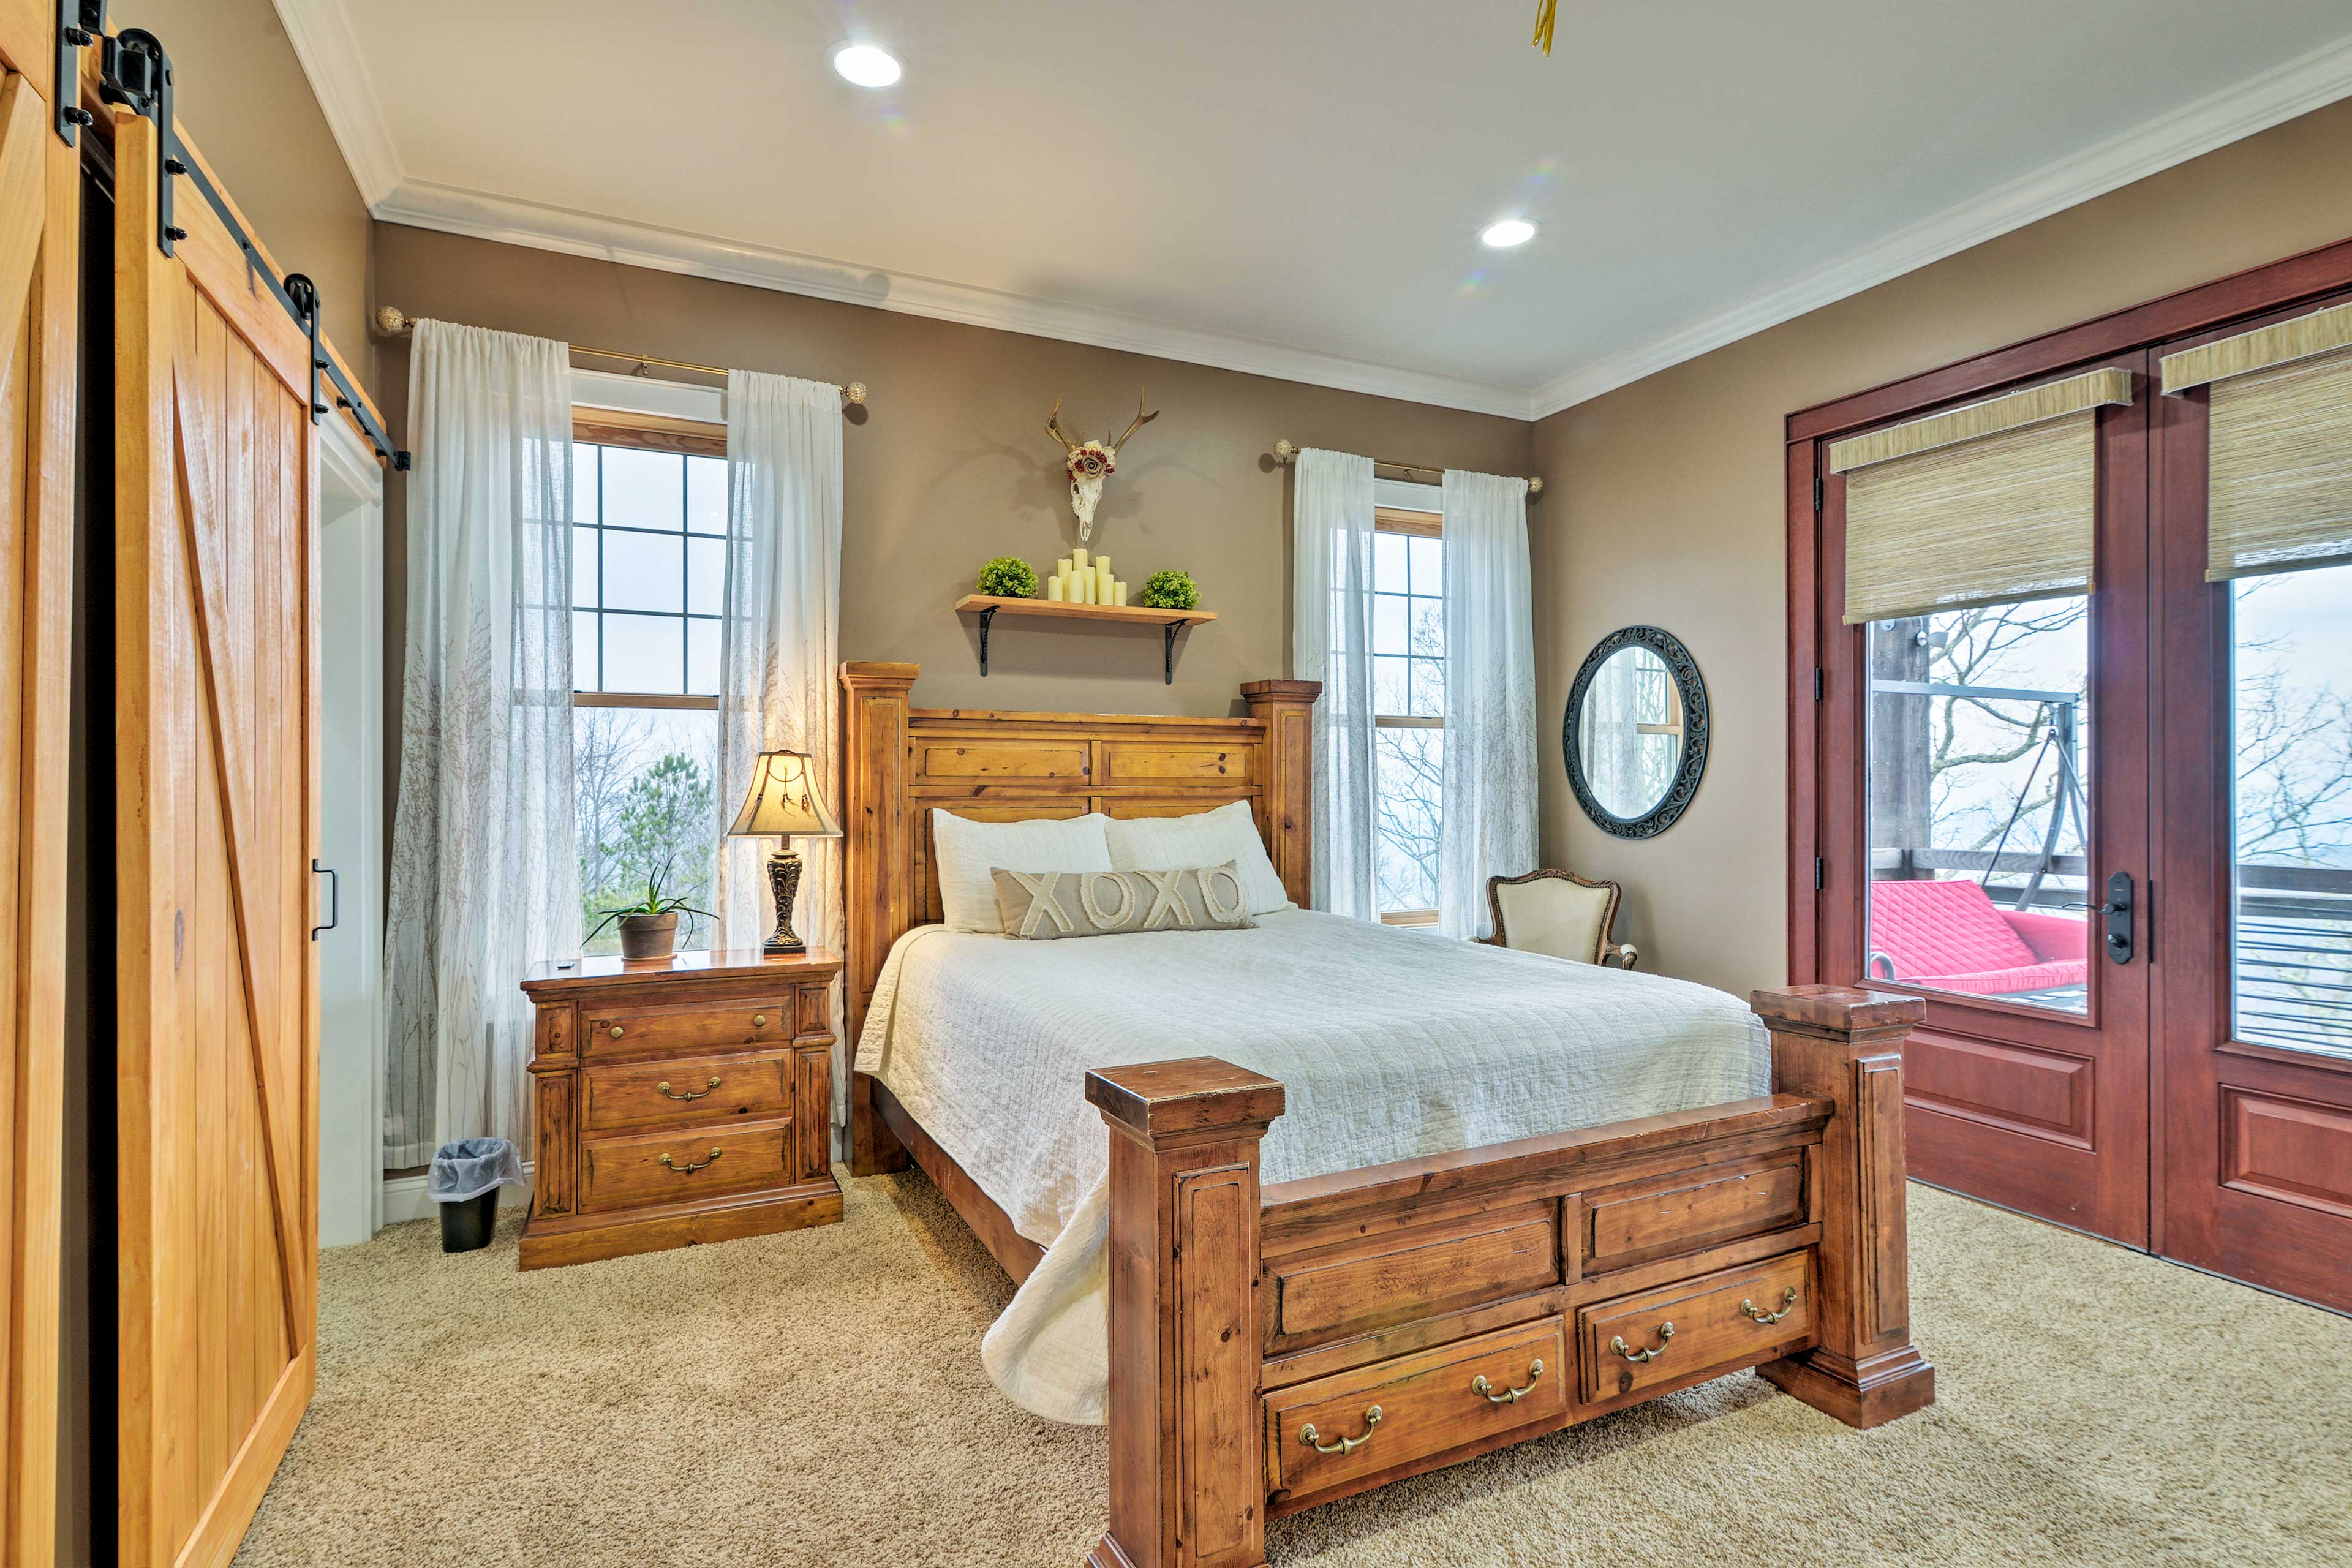 Enjoy the comfort of the queen-sized bed in the master suite.